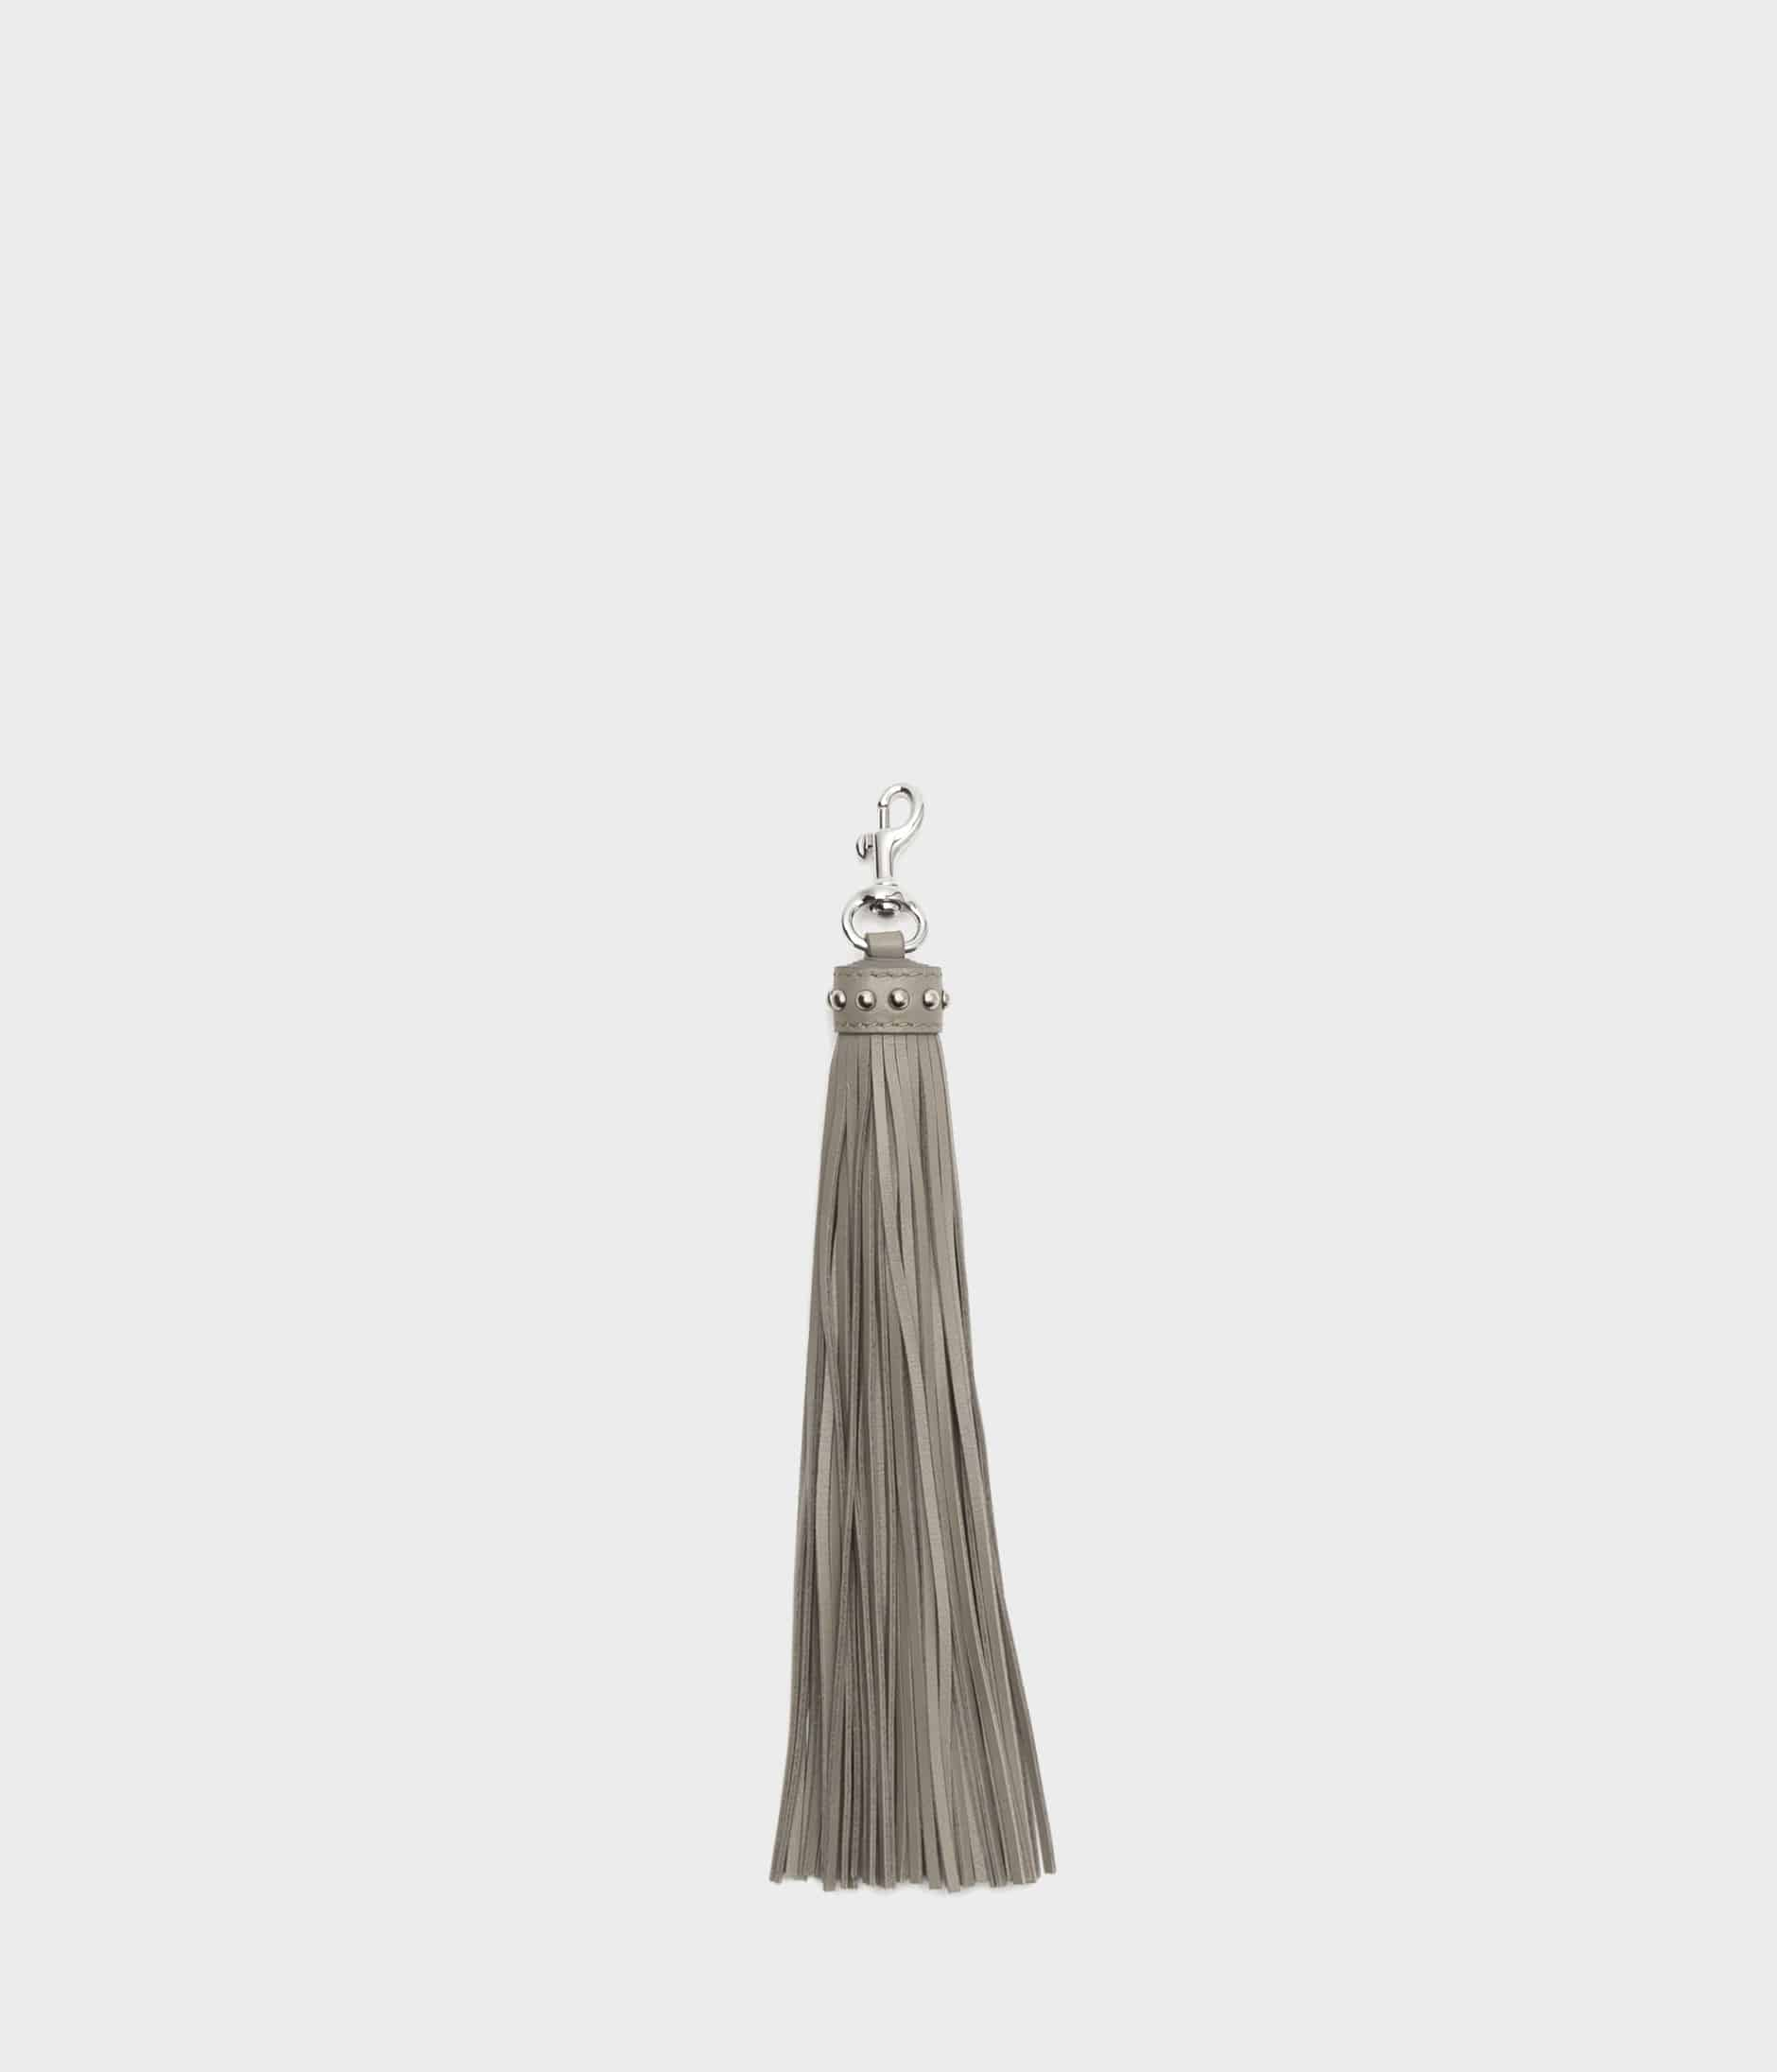 TASSEL CHARM WITH STUDS 詳細画像 WARM TAUPE 1